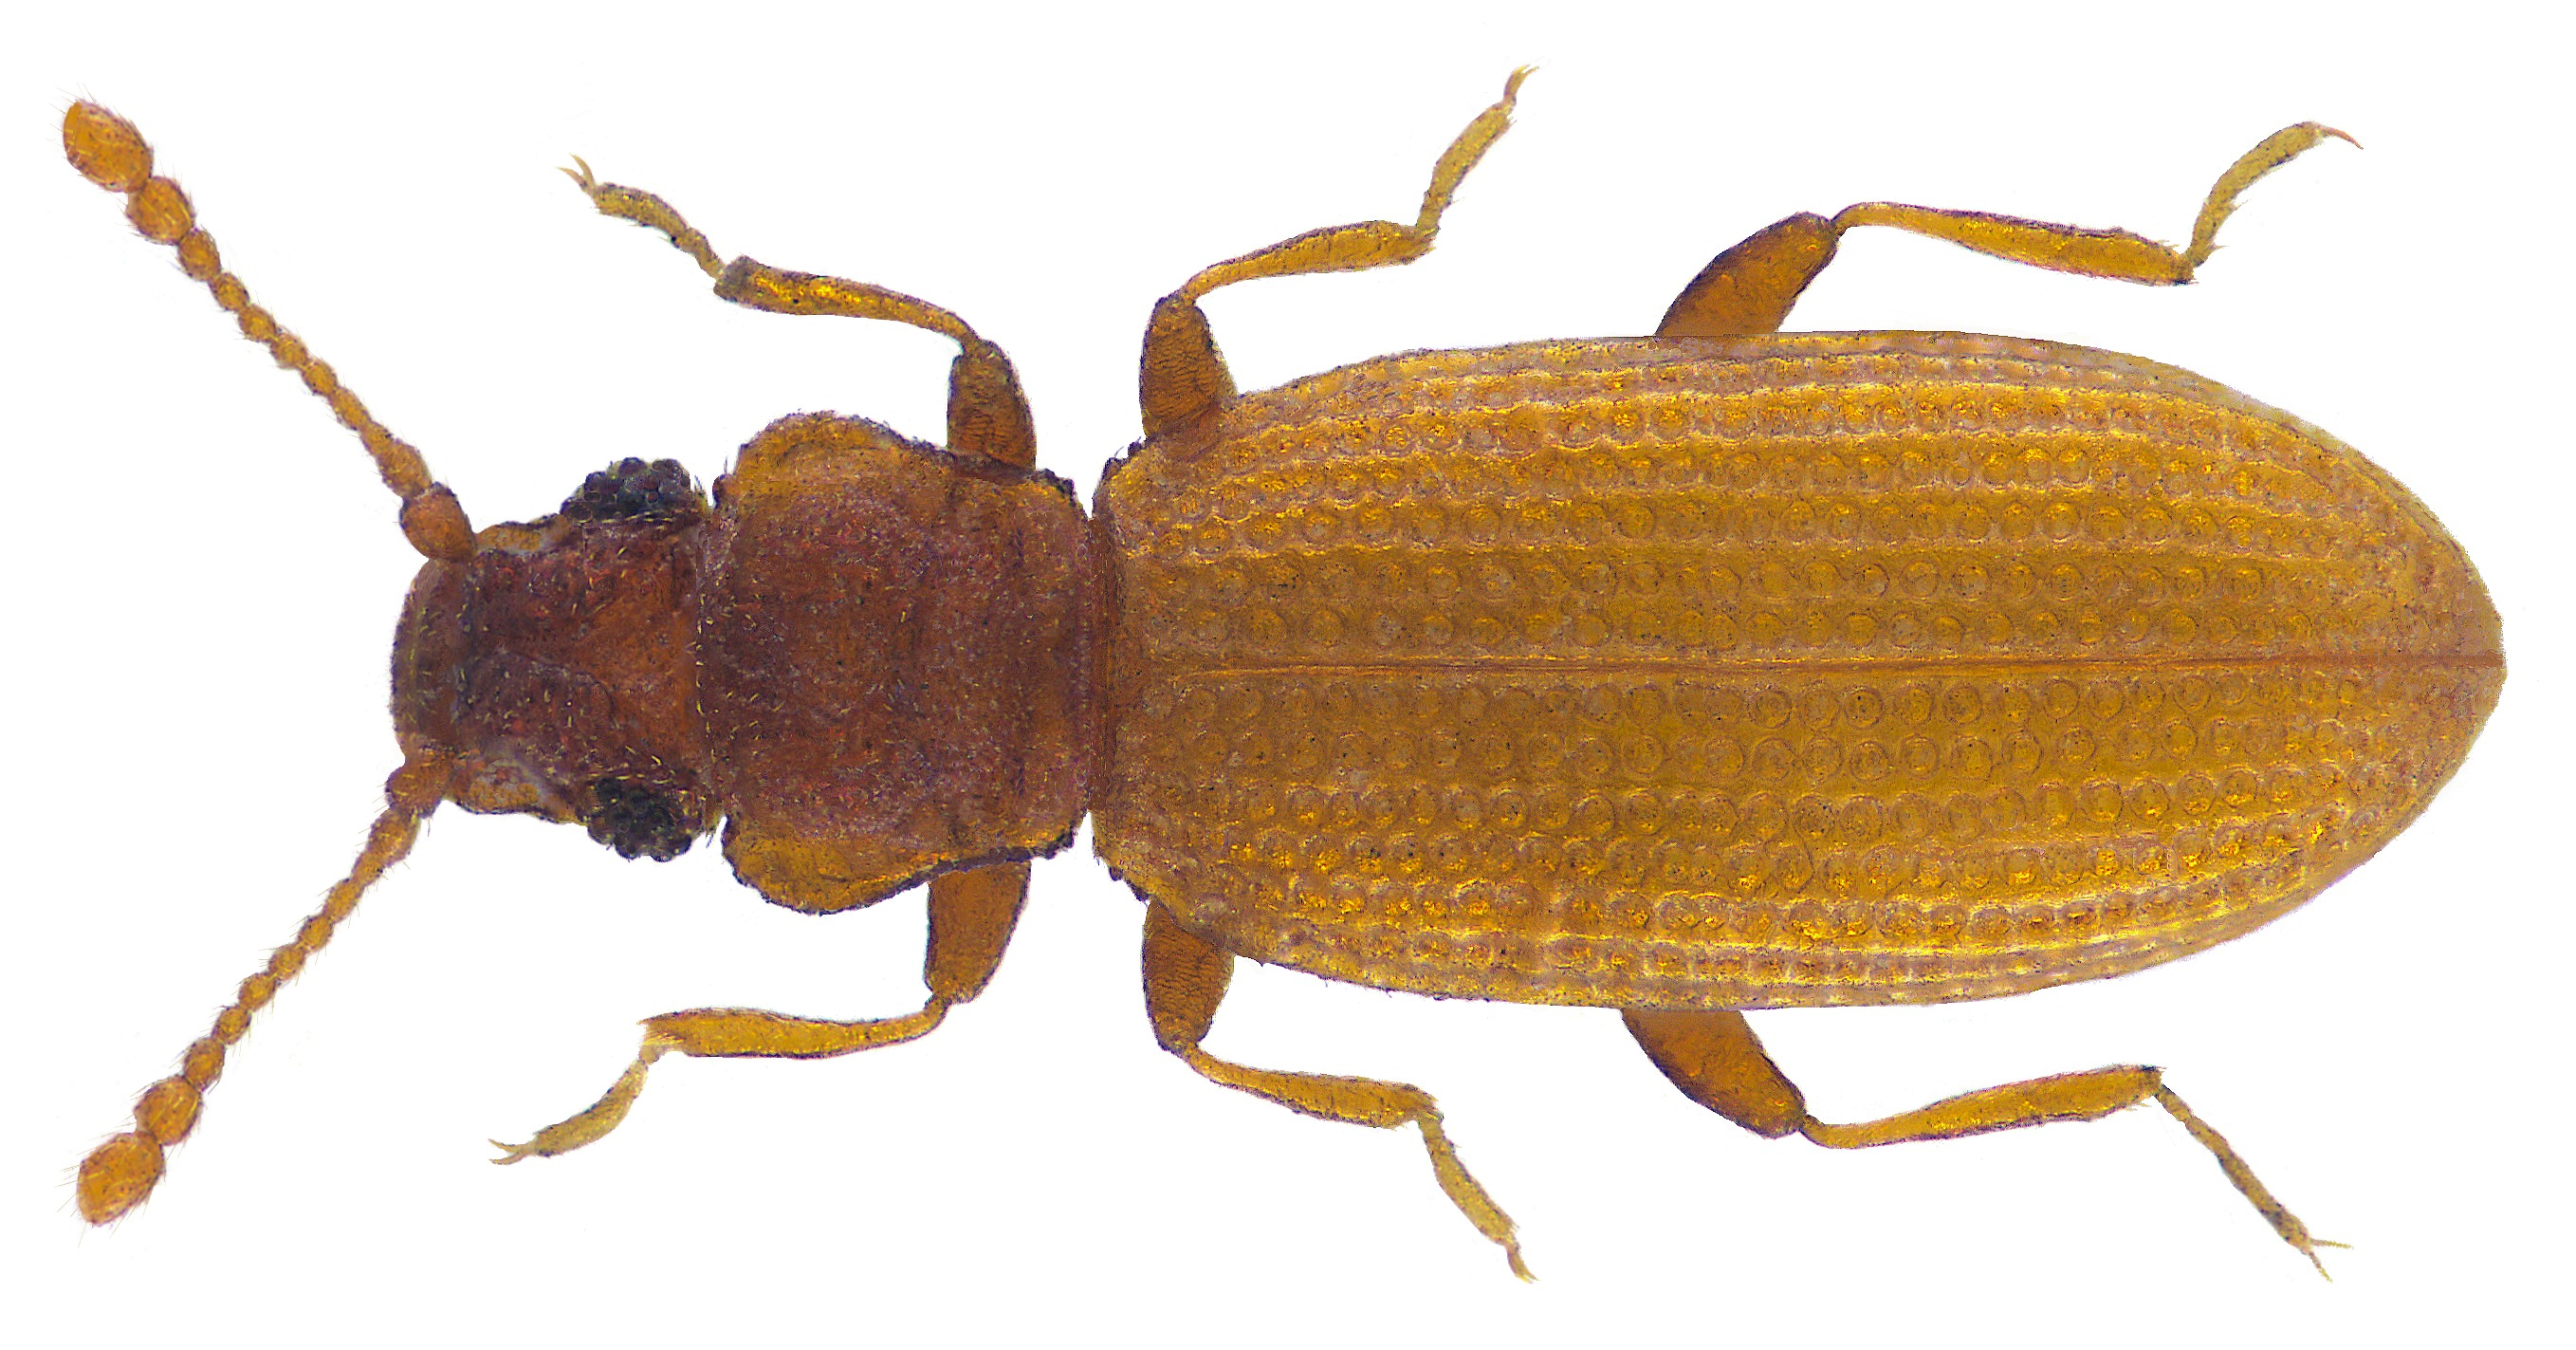 Image of Common Plaster Beetle